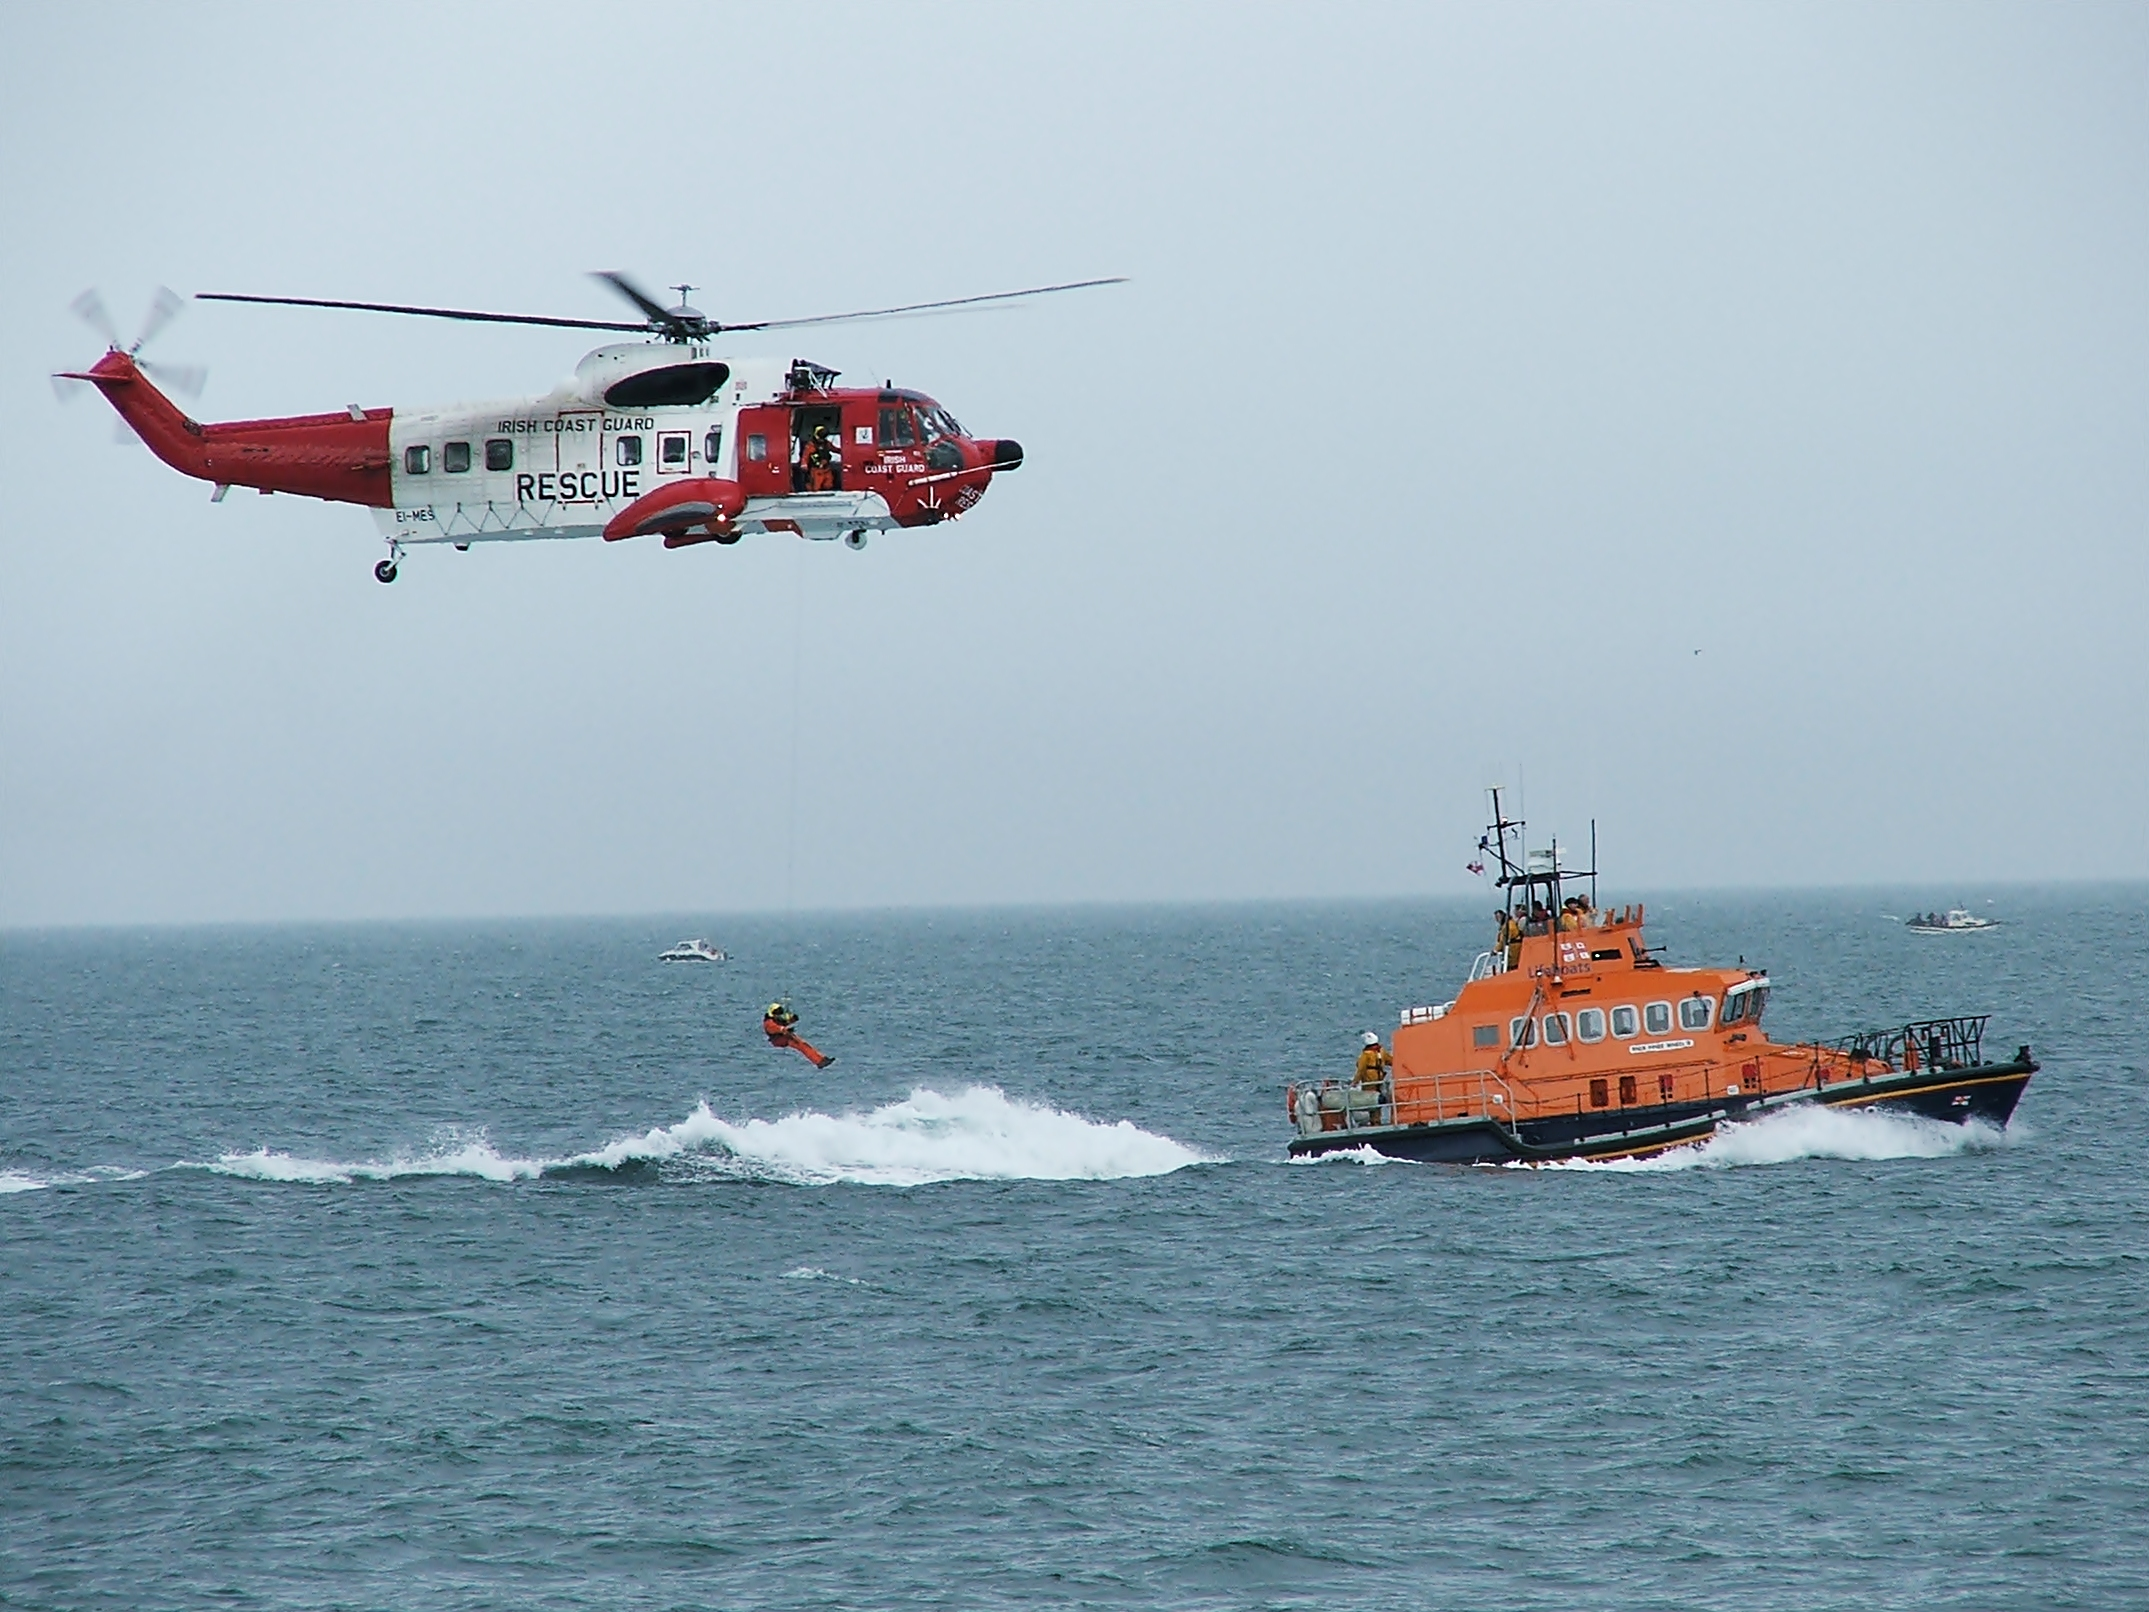 Description Irish Coastguard Helicopter RNLI Rescue Demonstartion.jpg